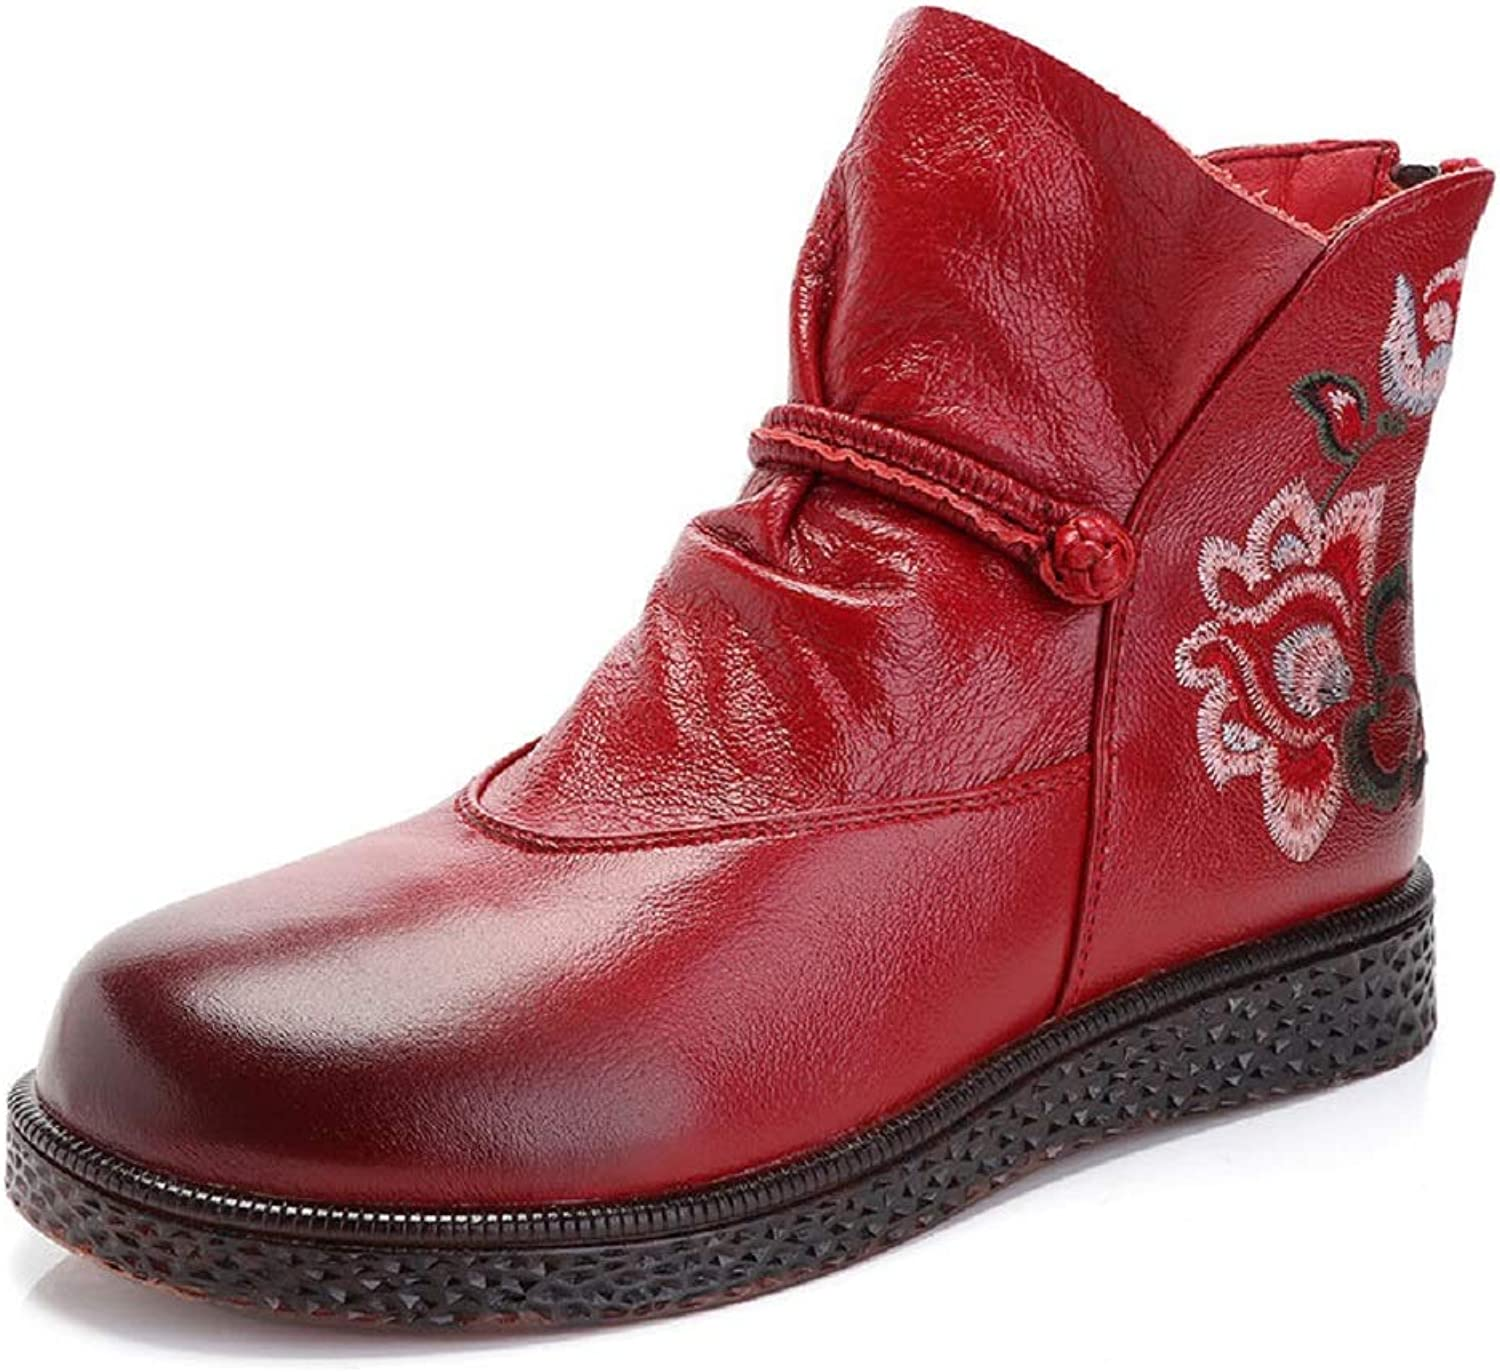 LingGT Embroidery Women Boots Leather Flower Soft Flat shoes